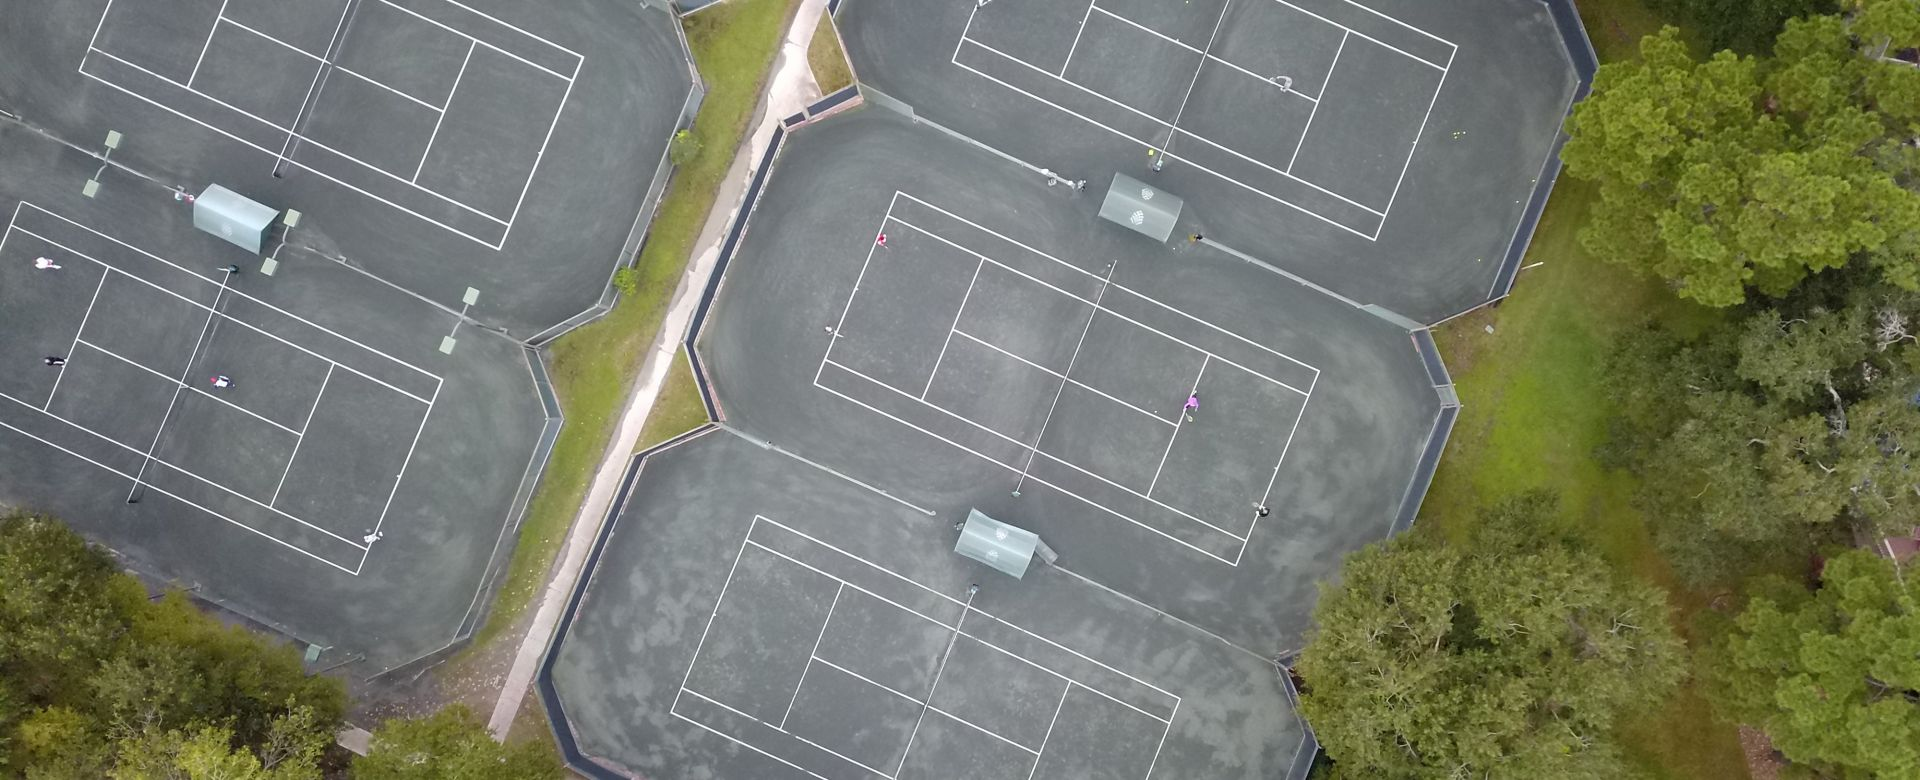 Aerial view of clay tennis courts.